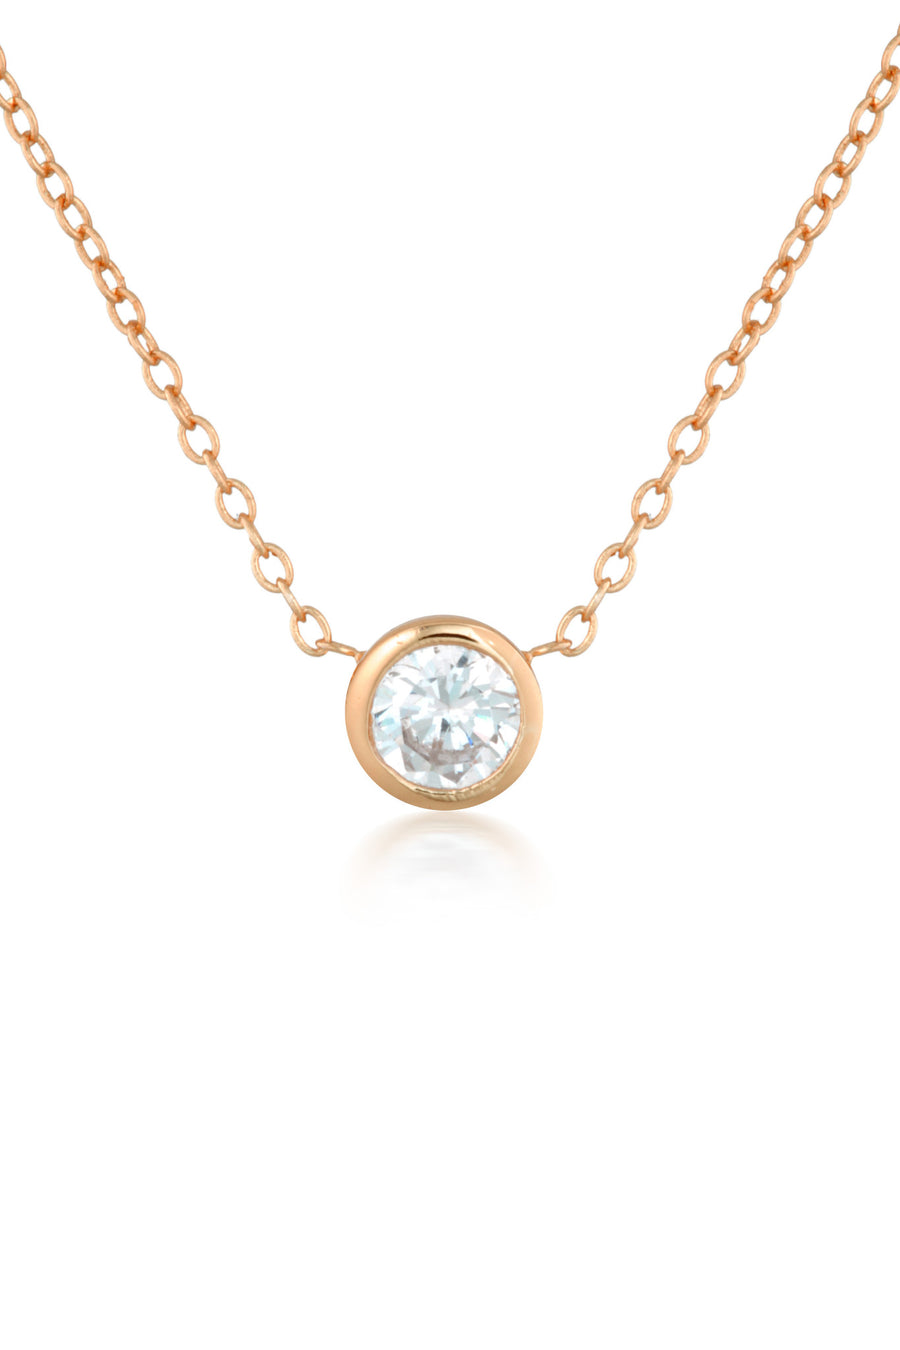 Myla Necklace in Rose Gold